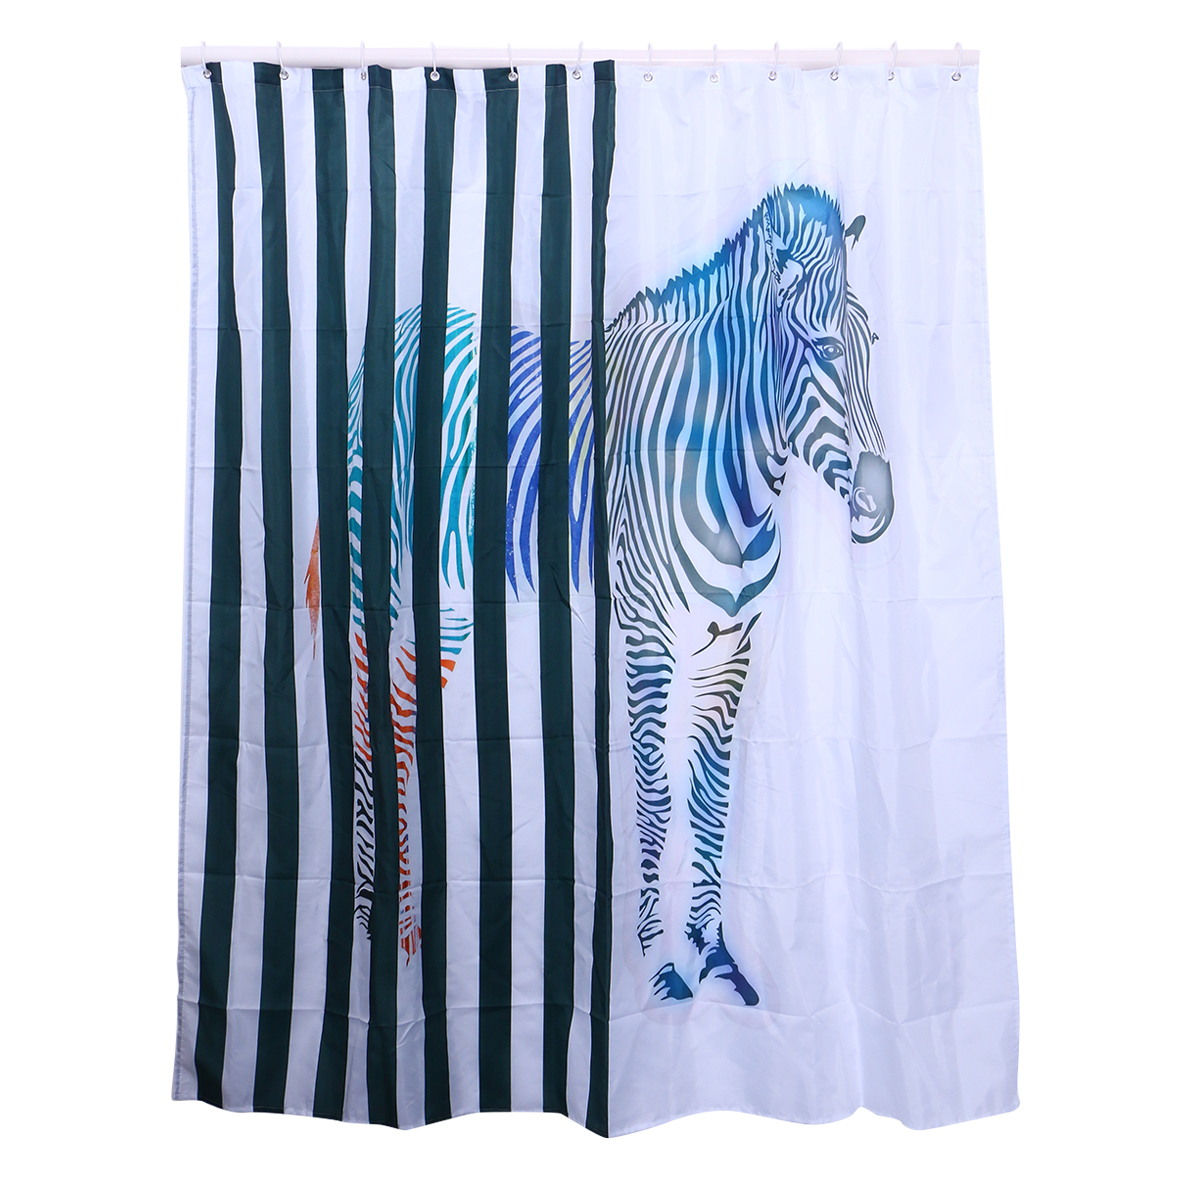 Waterproof Resistant Bathroom Drape Shower Curtain Zebra Printed Blinds Bath For Motels Home Campers